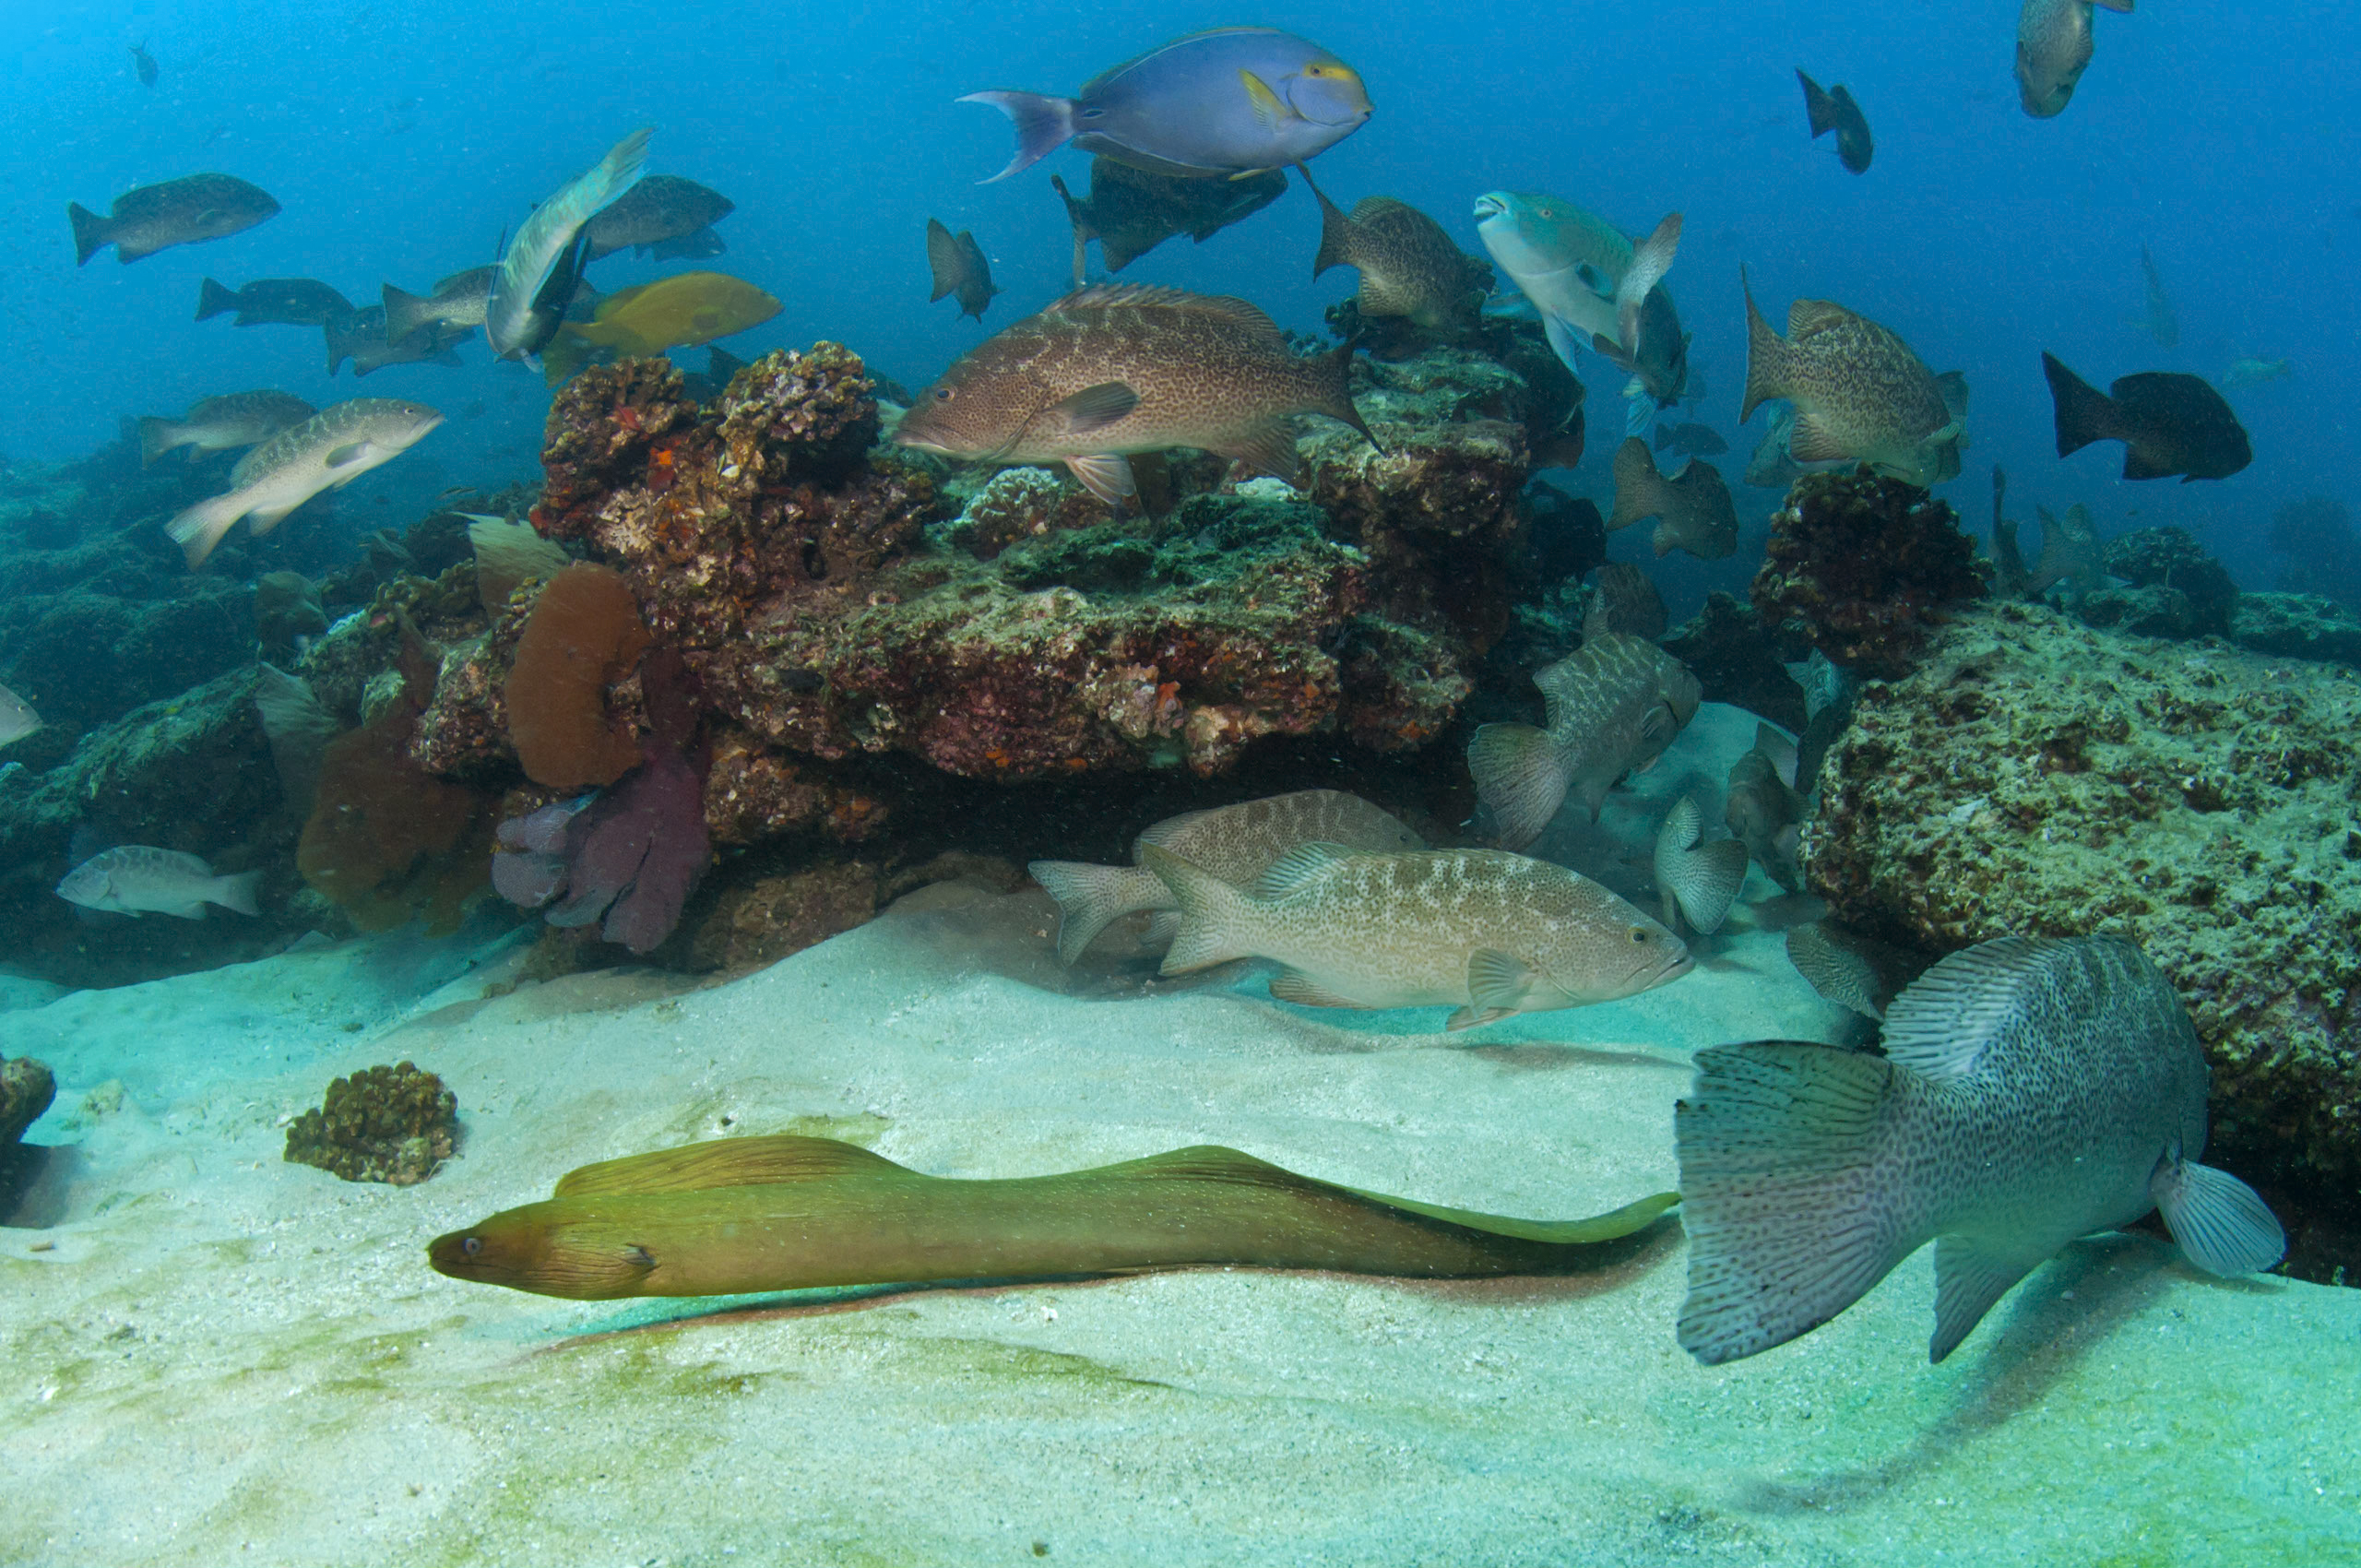 Photo of a variety of fish swimming around coral and sandy bottom habitat. Photo credit: Octavio Aburto